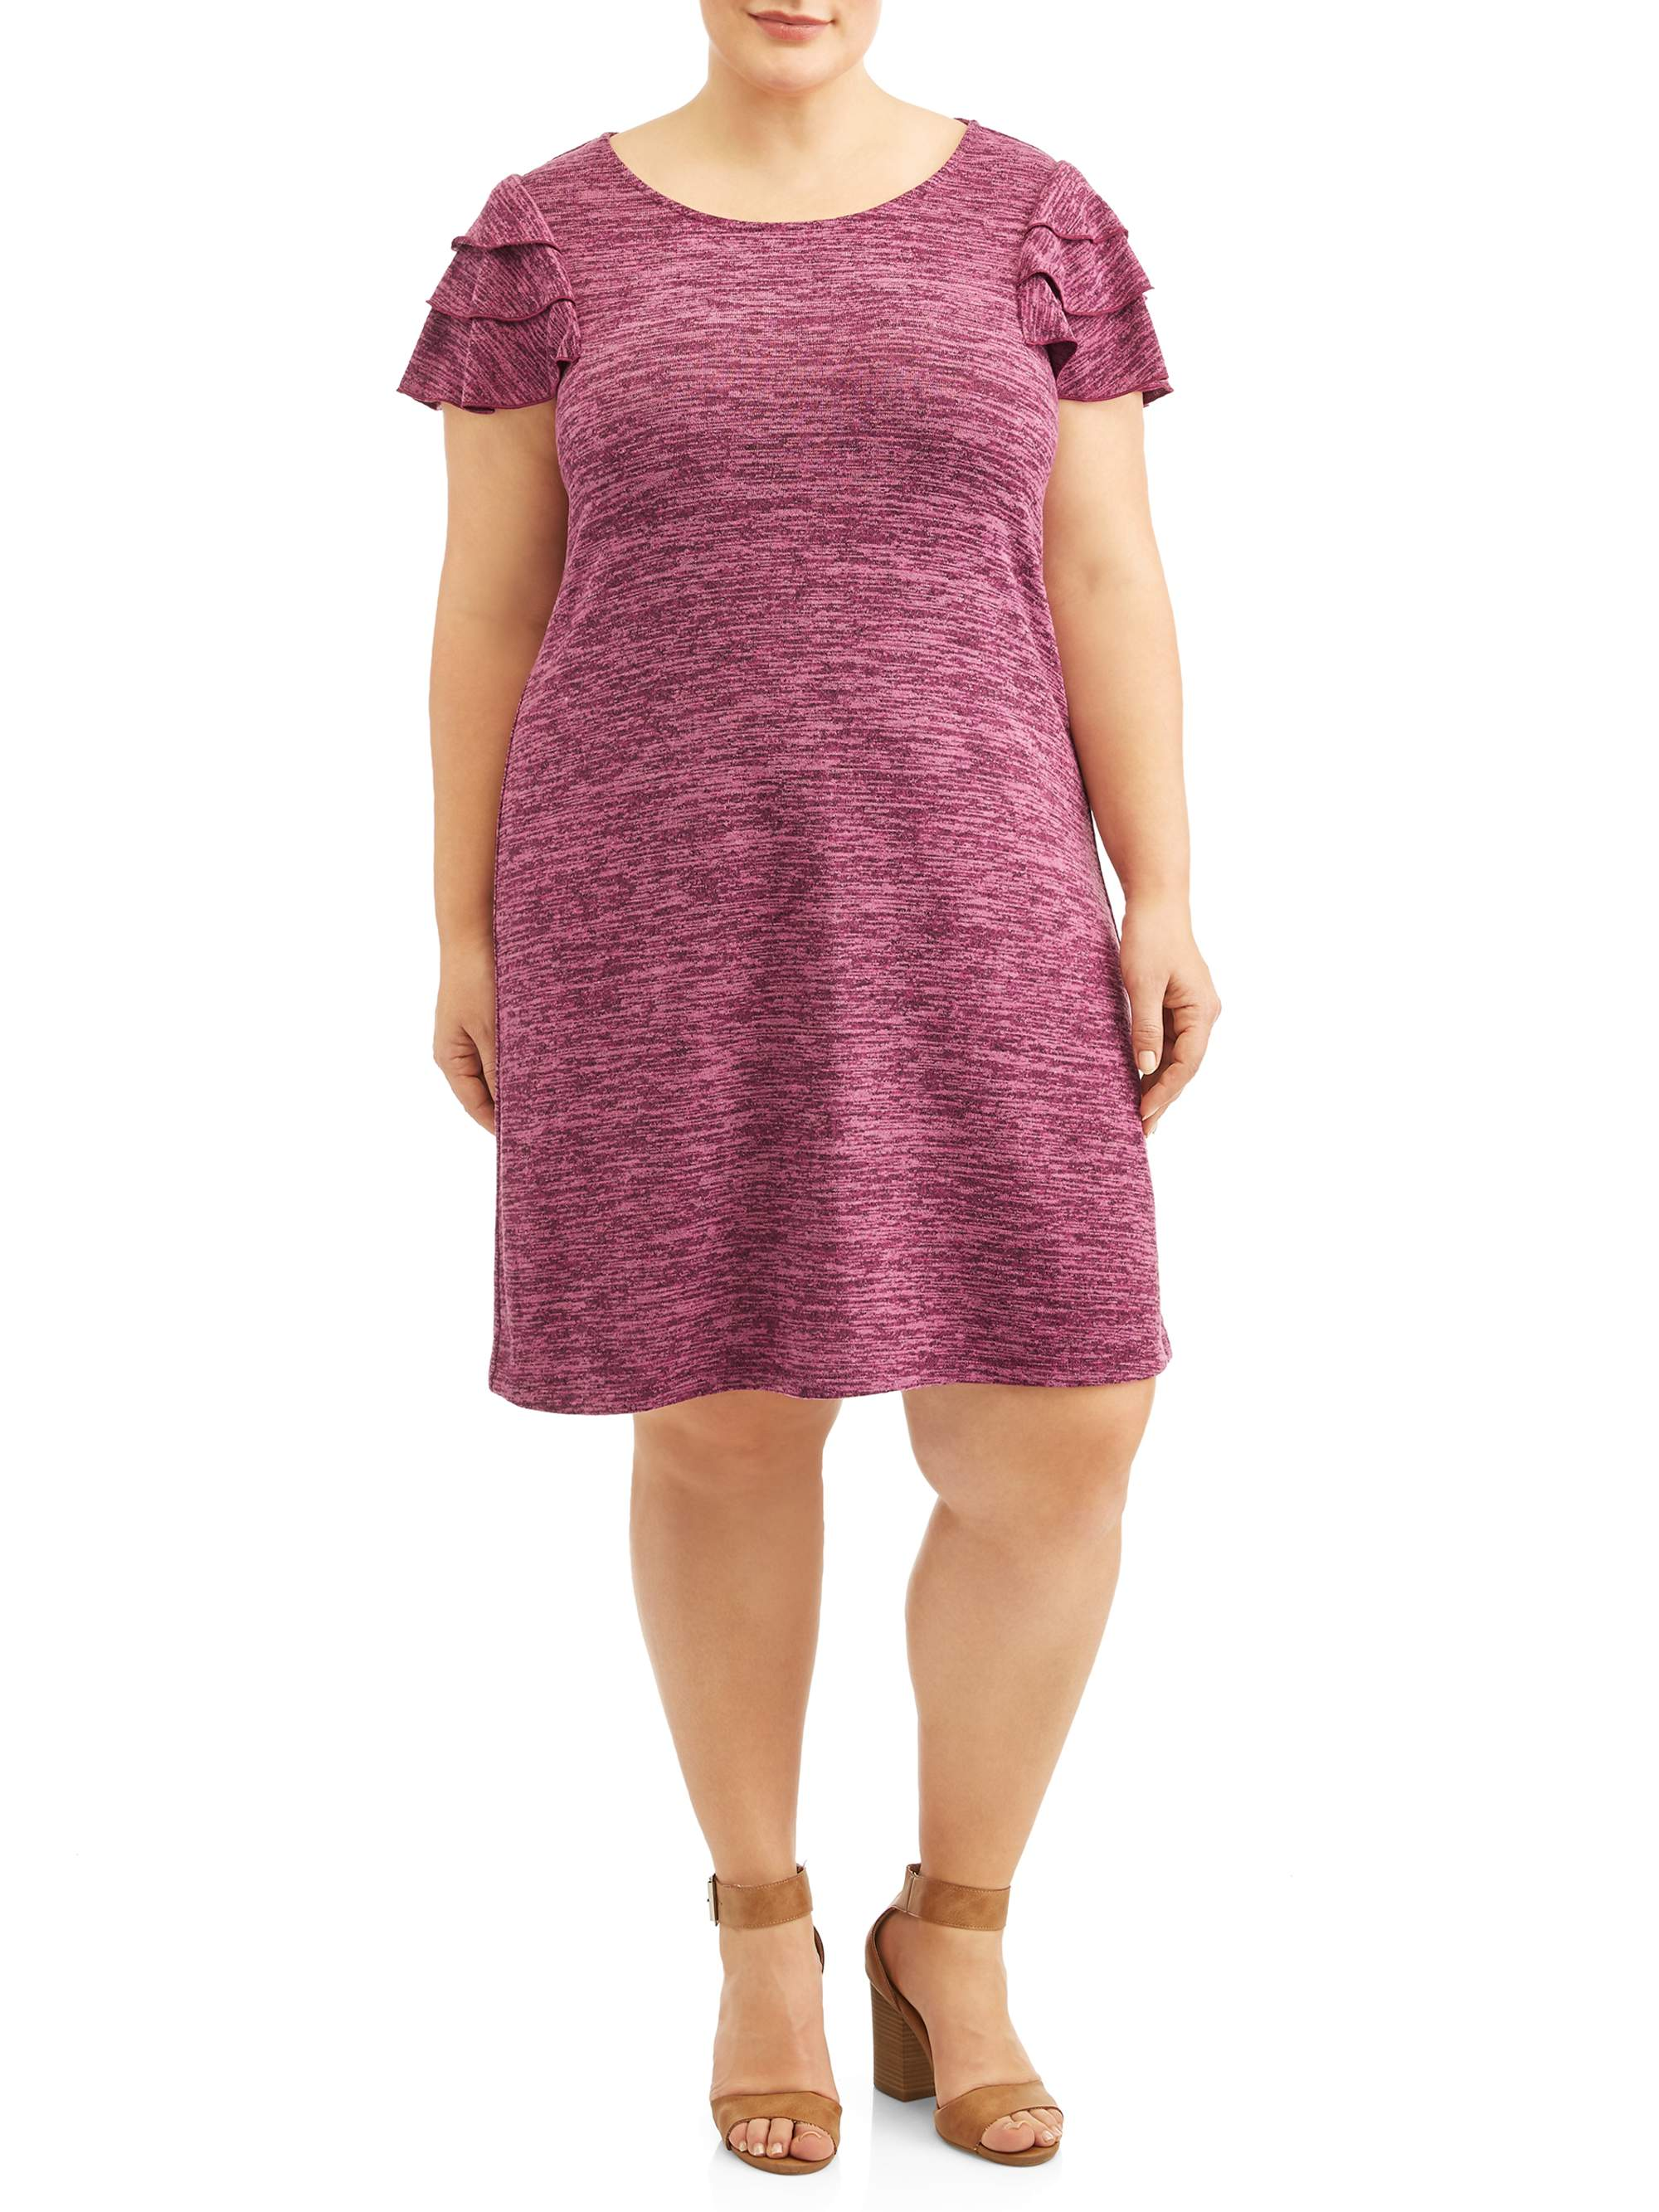 Women's Plus Size Ruffle Sleeved Knit Dress